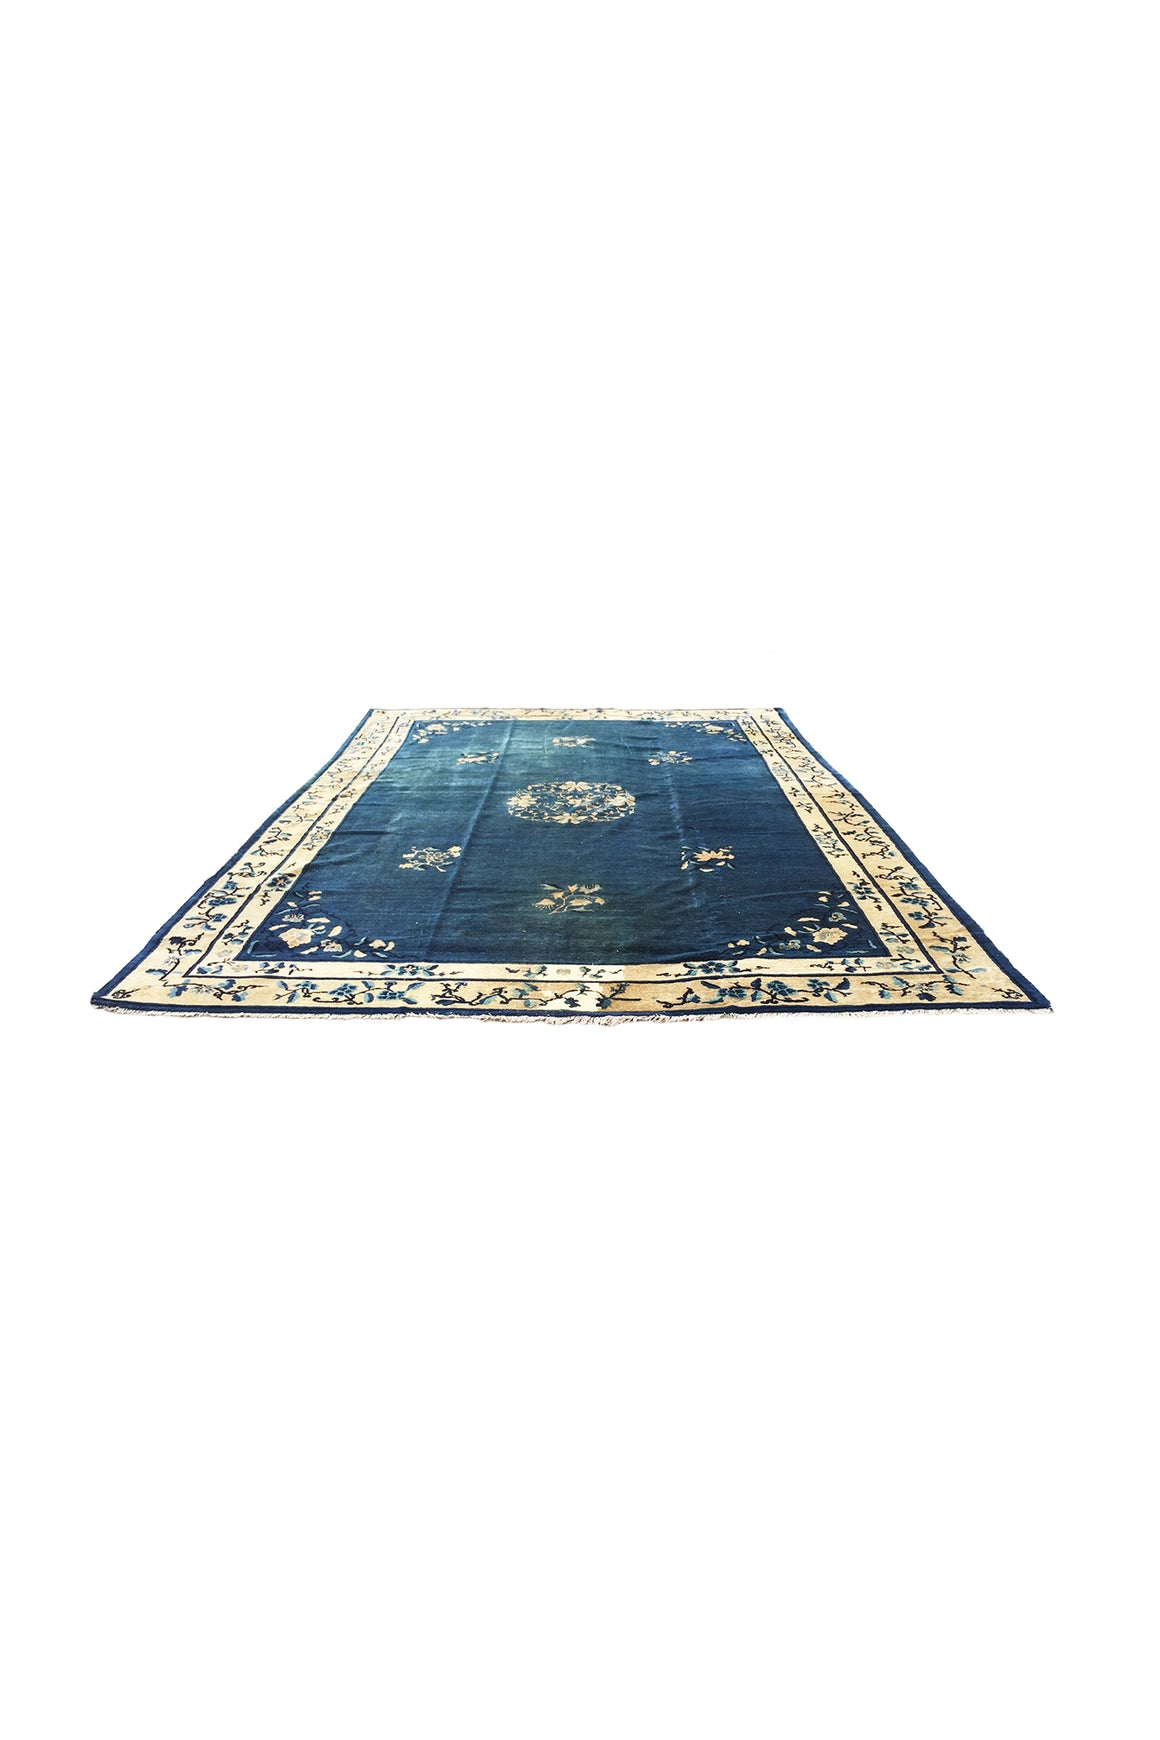 "1930s Chinese Navy Blue & White Art Deco Rug - 11' 6"" x 9' 1"""